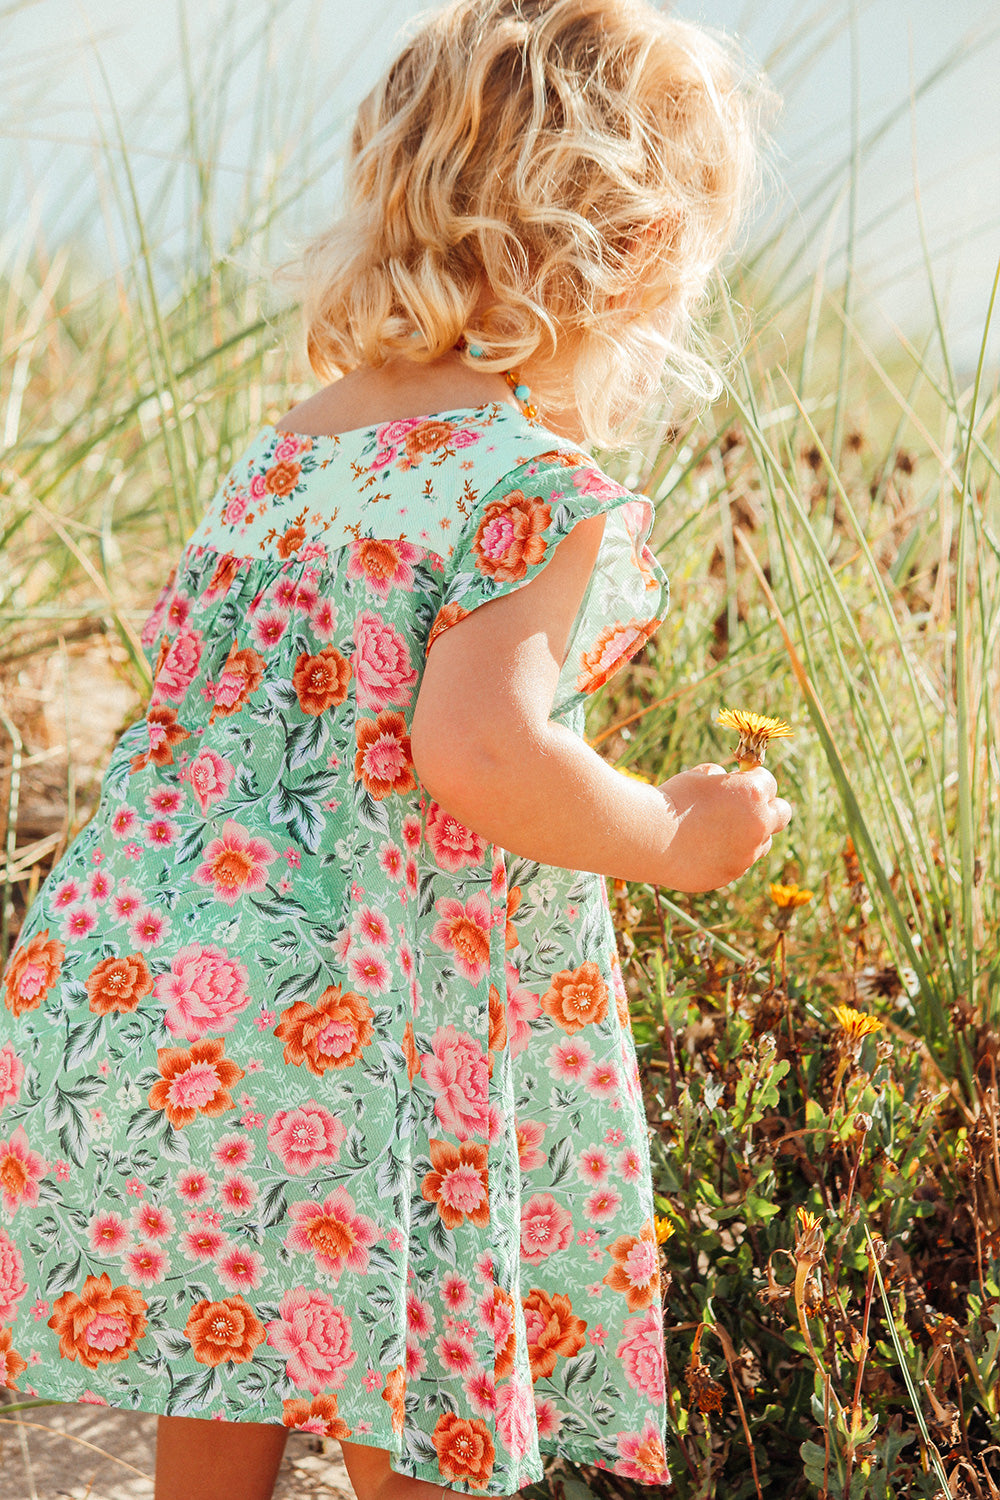 Harmony Kiddies Dress in Mint